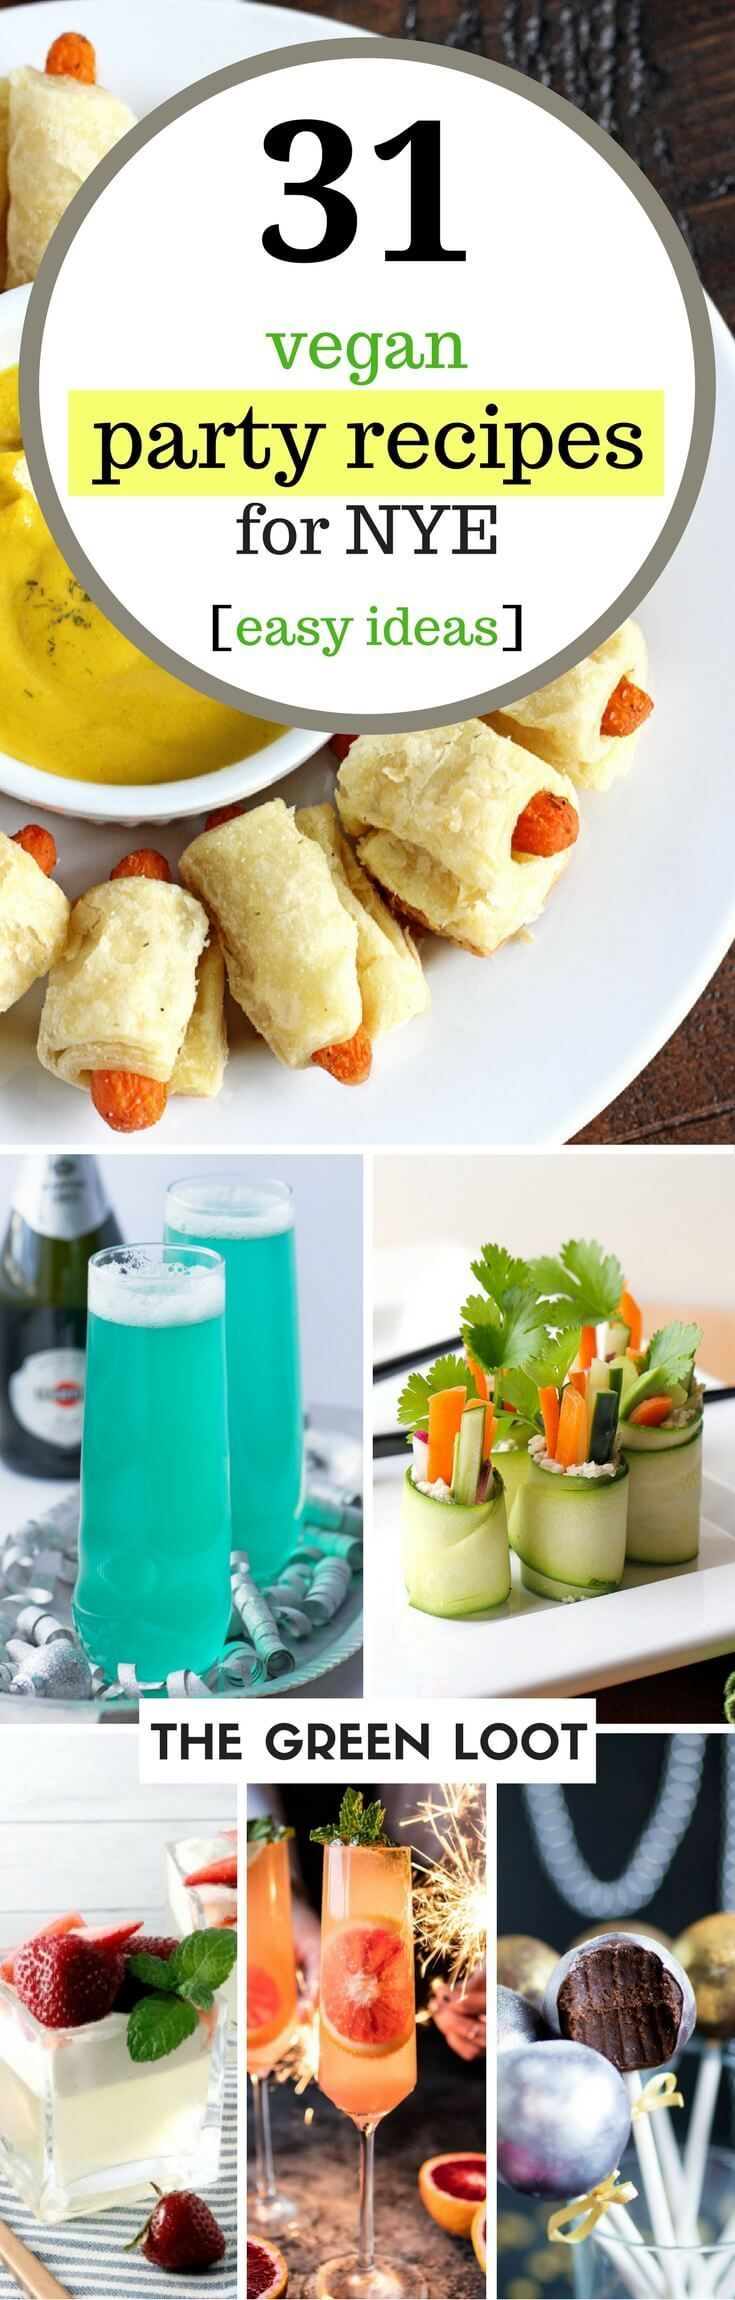 Vegan party recipes and ideas for New Year's Eve. They are easy, dairy-free party appetizers (e.g., cream cheese, black eyed peas) and holiday cocktails (e.g., champagne, jello shots) for the best celebration with your friends. Happy New Year! | The Green Loot #vegan #partyideas